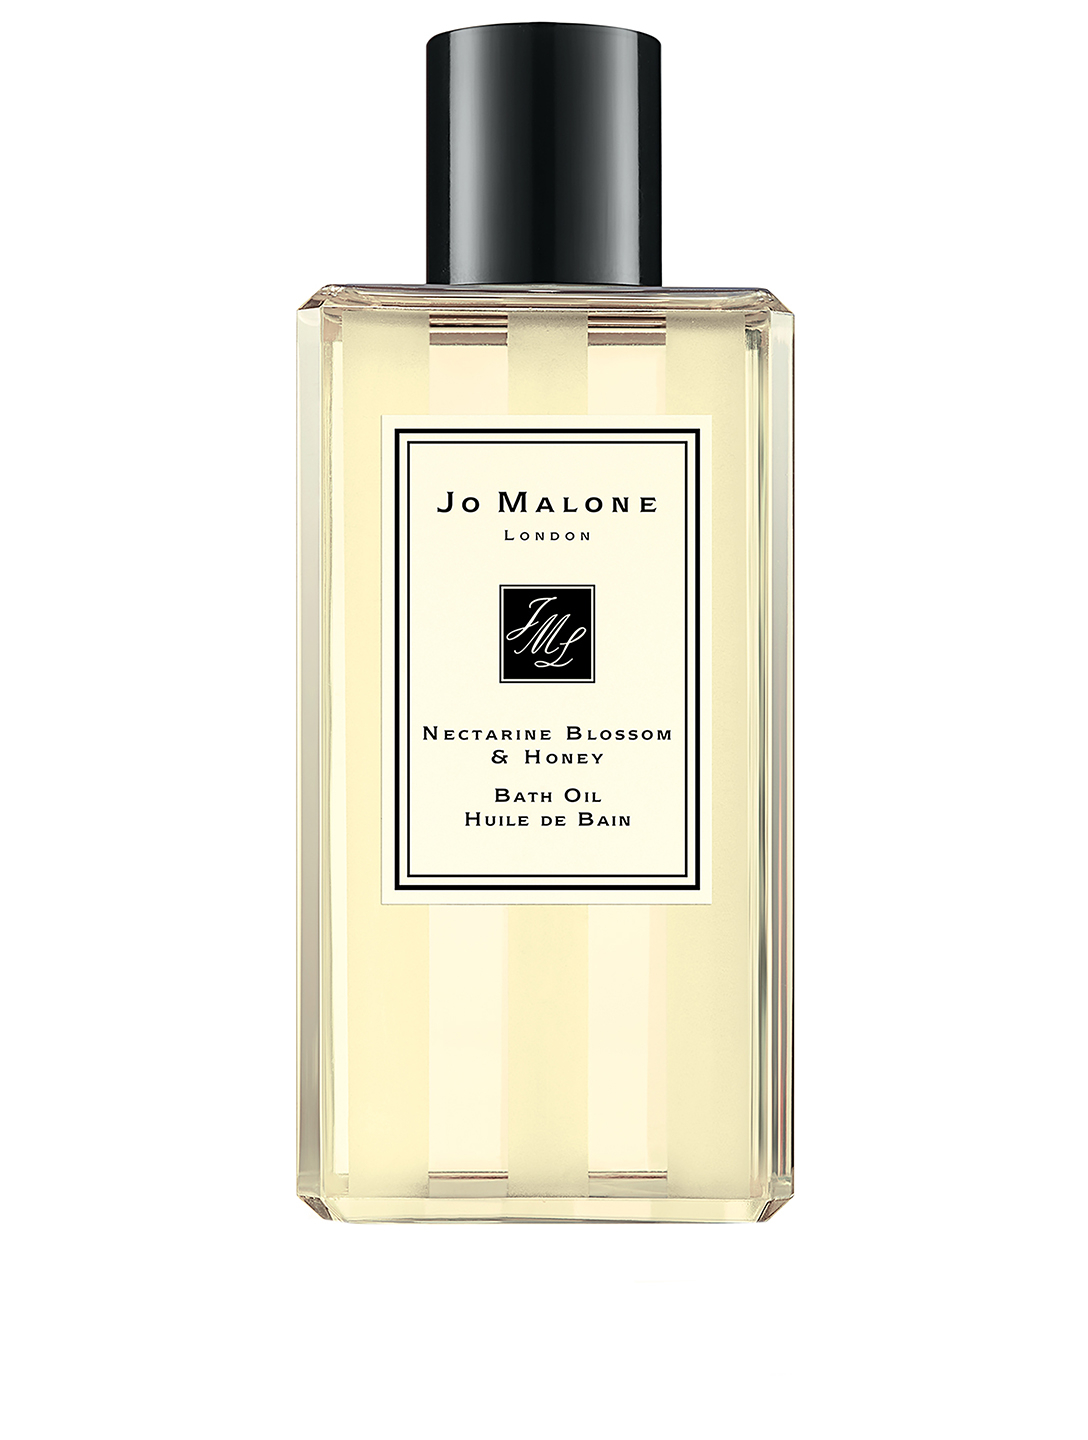 JO MALONE LONDON Nectarine Blossom & Honey Bath Oil Beauty